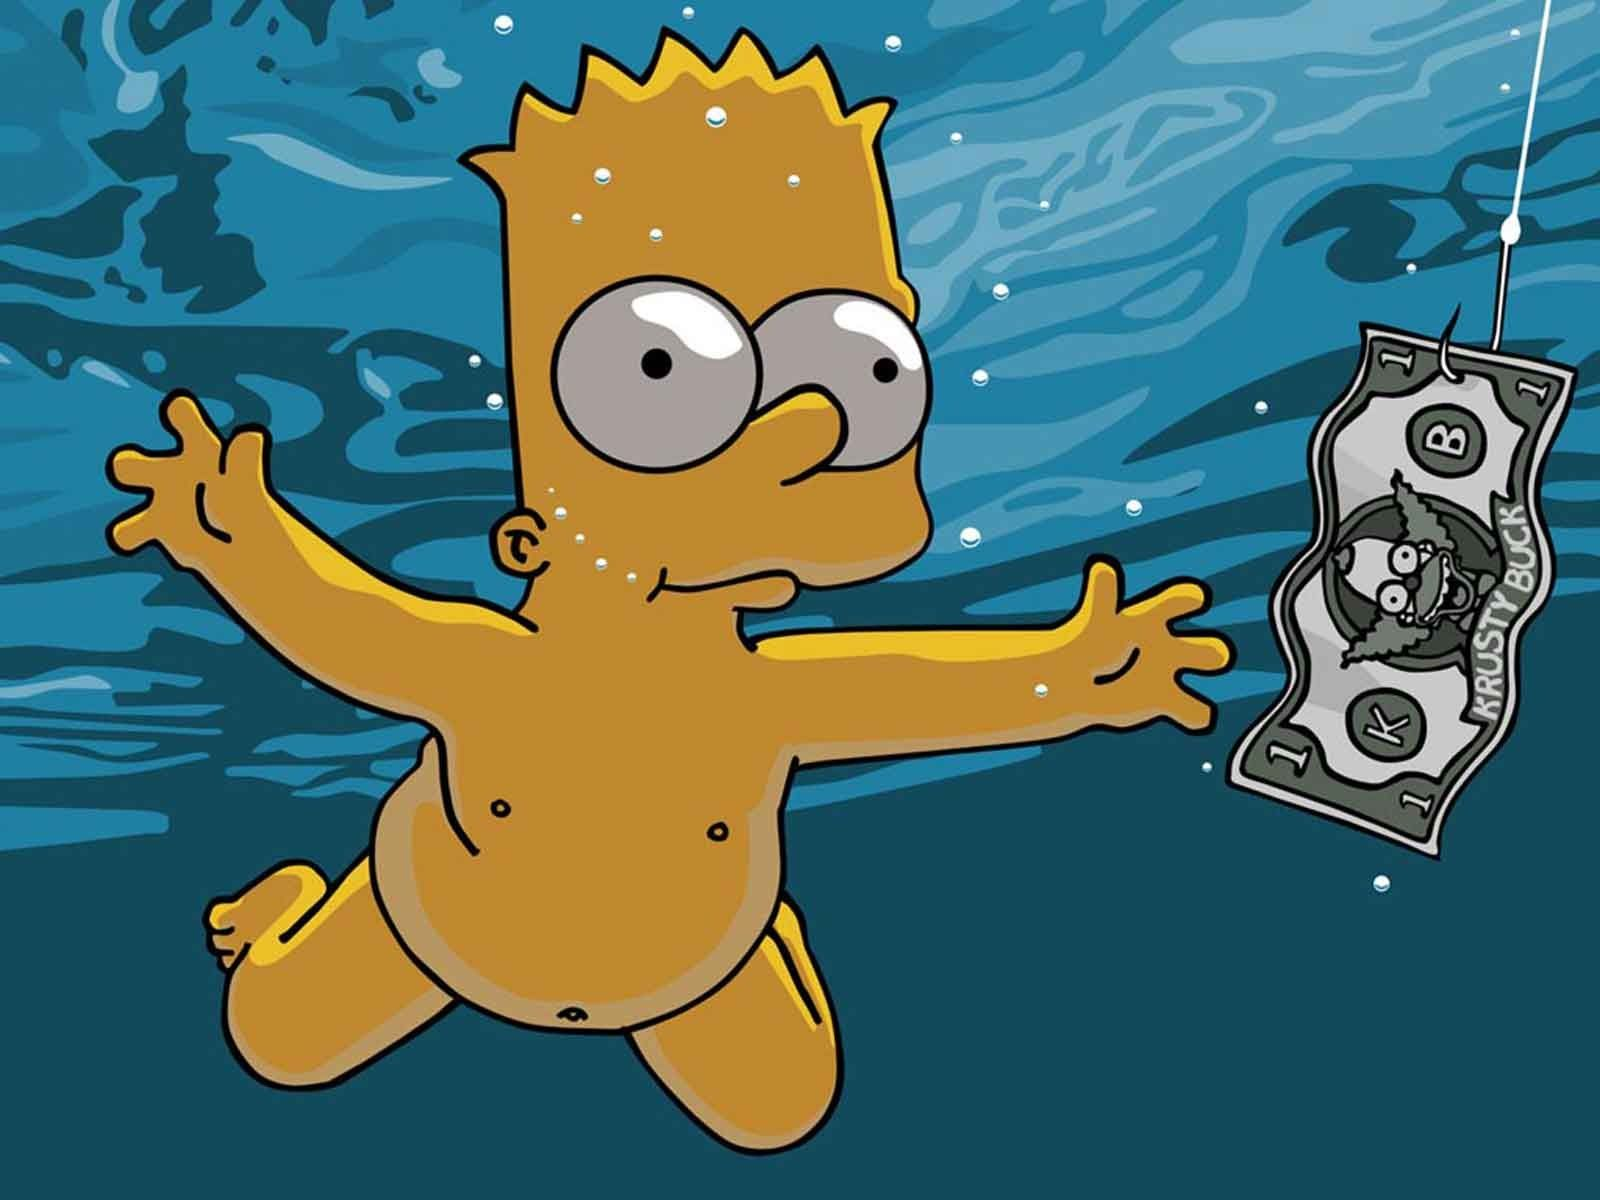 The Simpsons Wallpapers High Resolution and Quality Download.